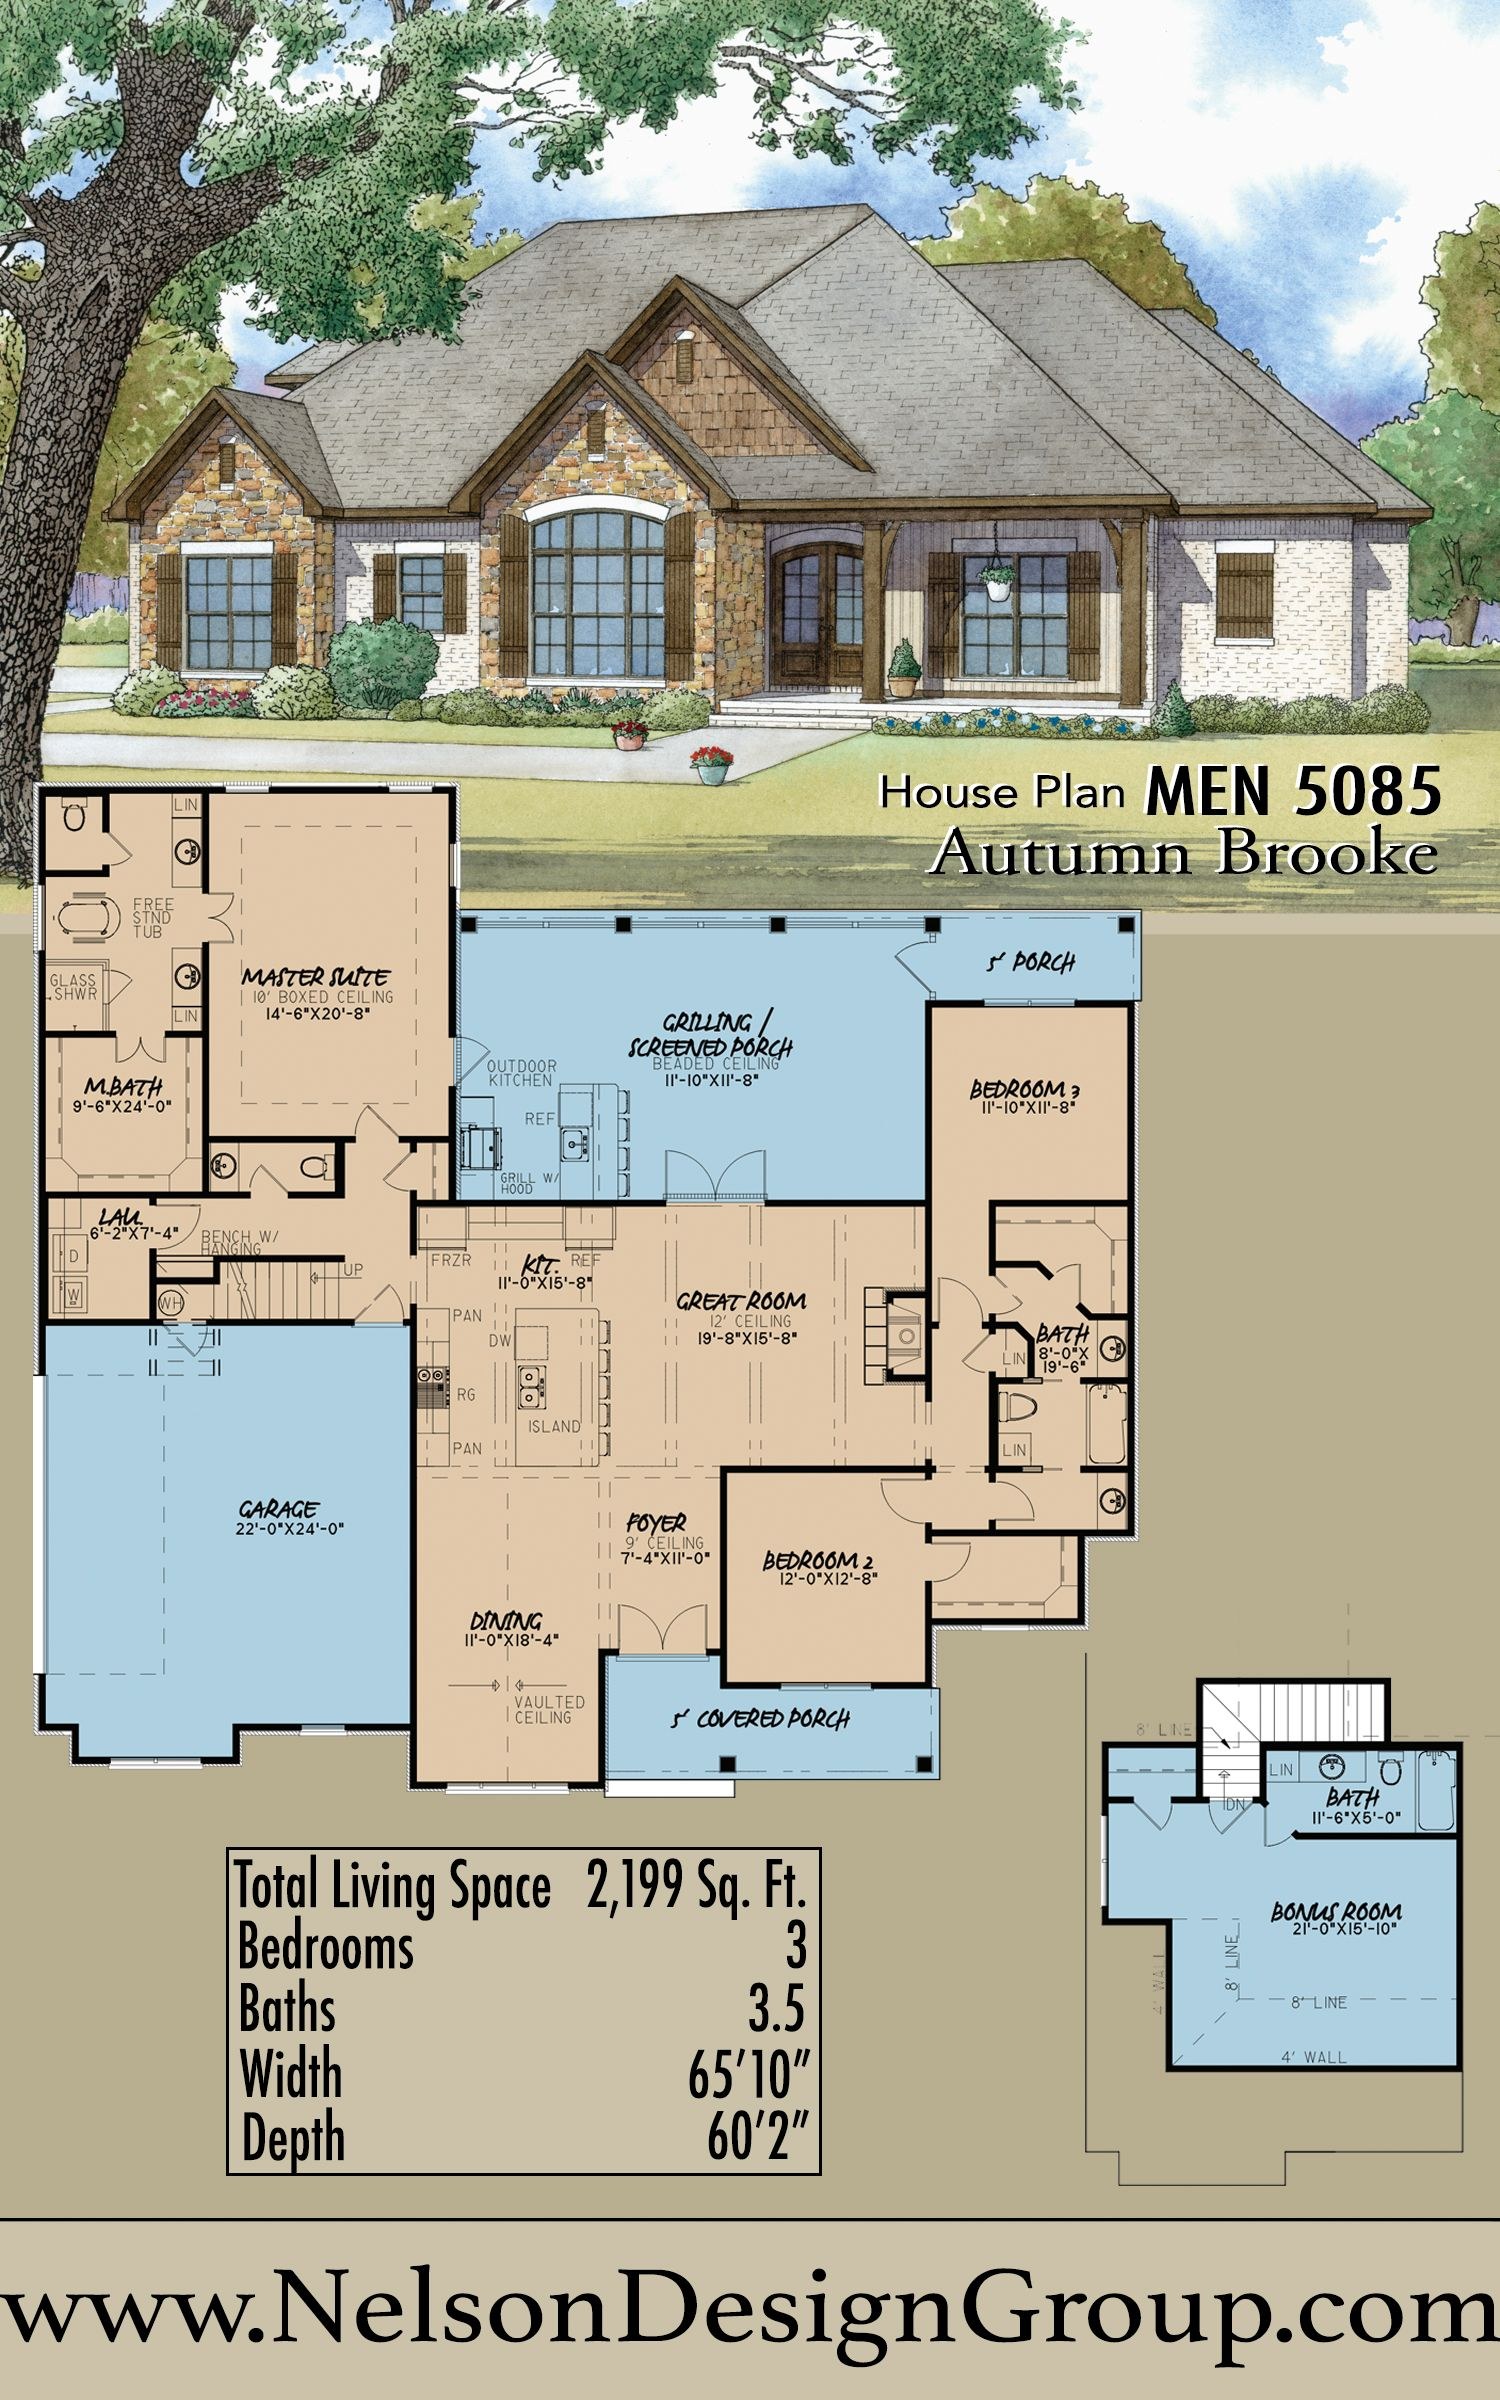 Houses Homes Craftsman Houseplans Homeplans European Traditional Craftsman Bungalow House Plans New House Plans House Blueprints